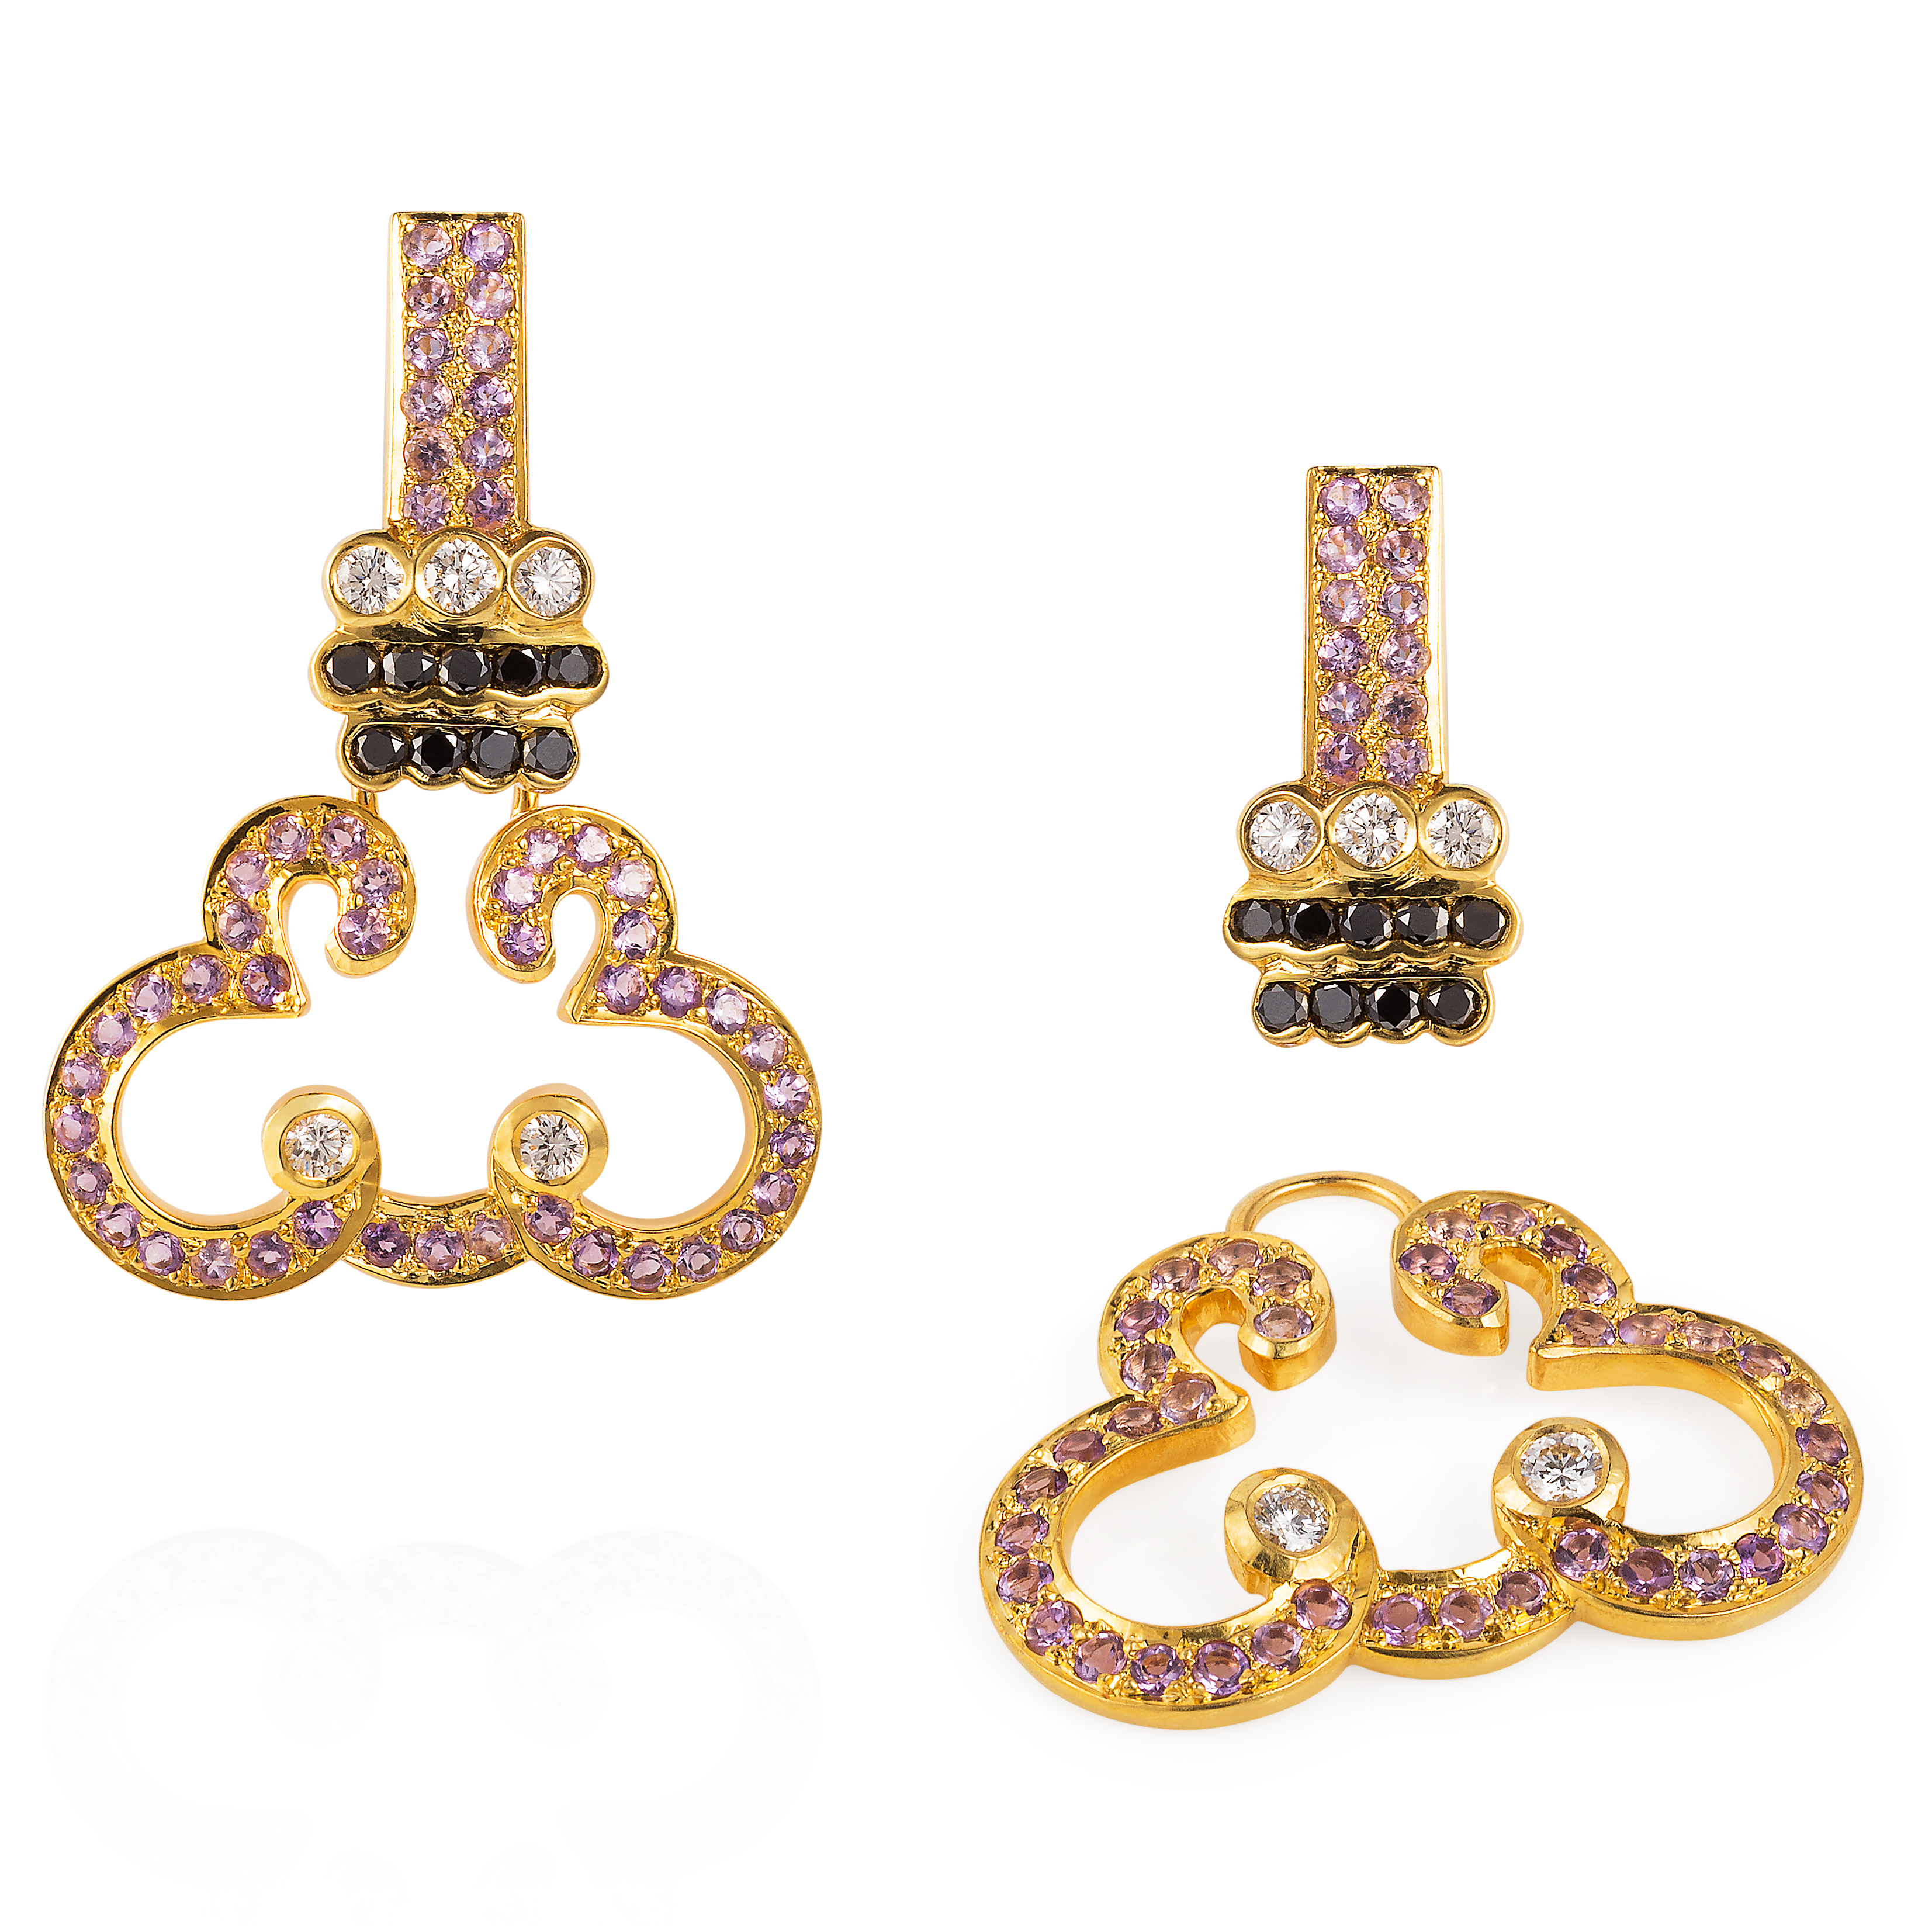 Lace Earrings – Amethyst, Black And White Diamonds 18k Gold